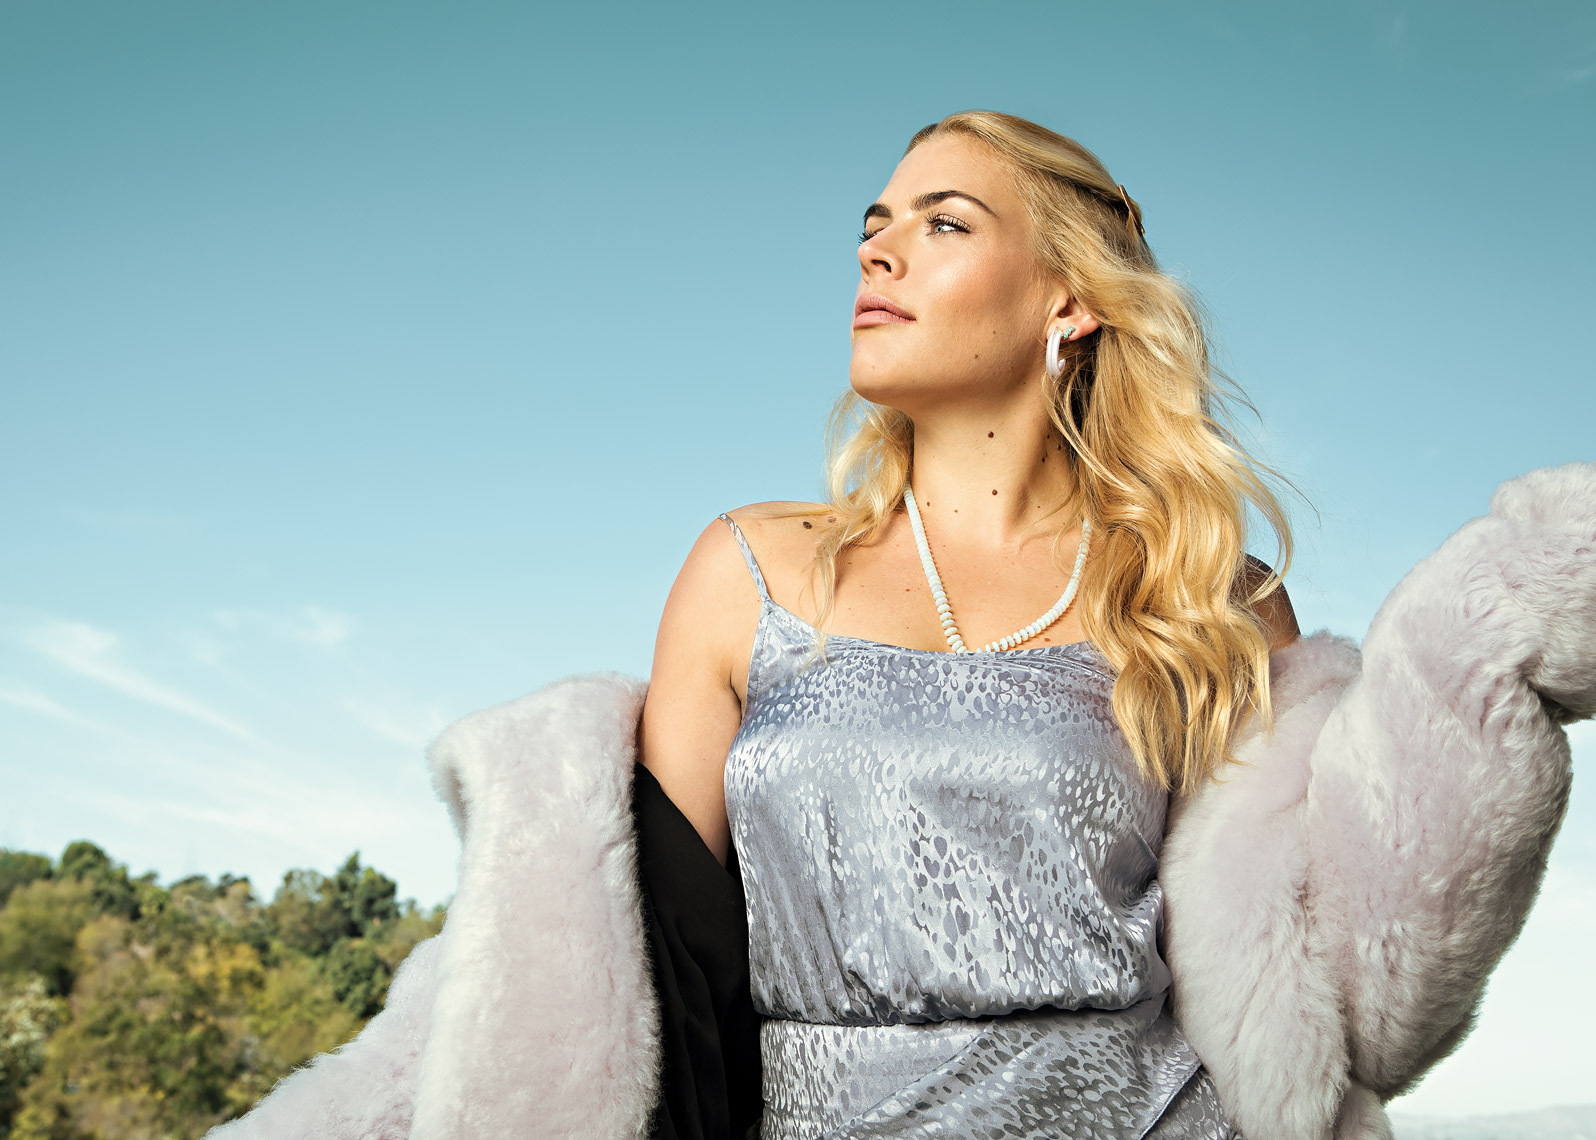 Busy Philipps by Scott Witter for Adweek